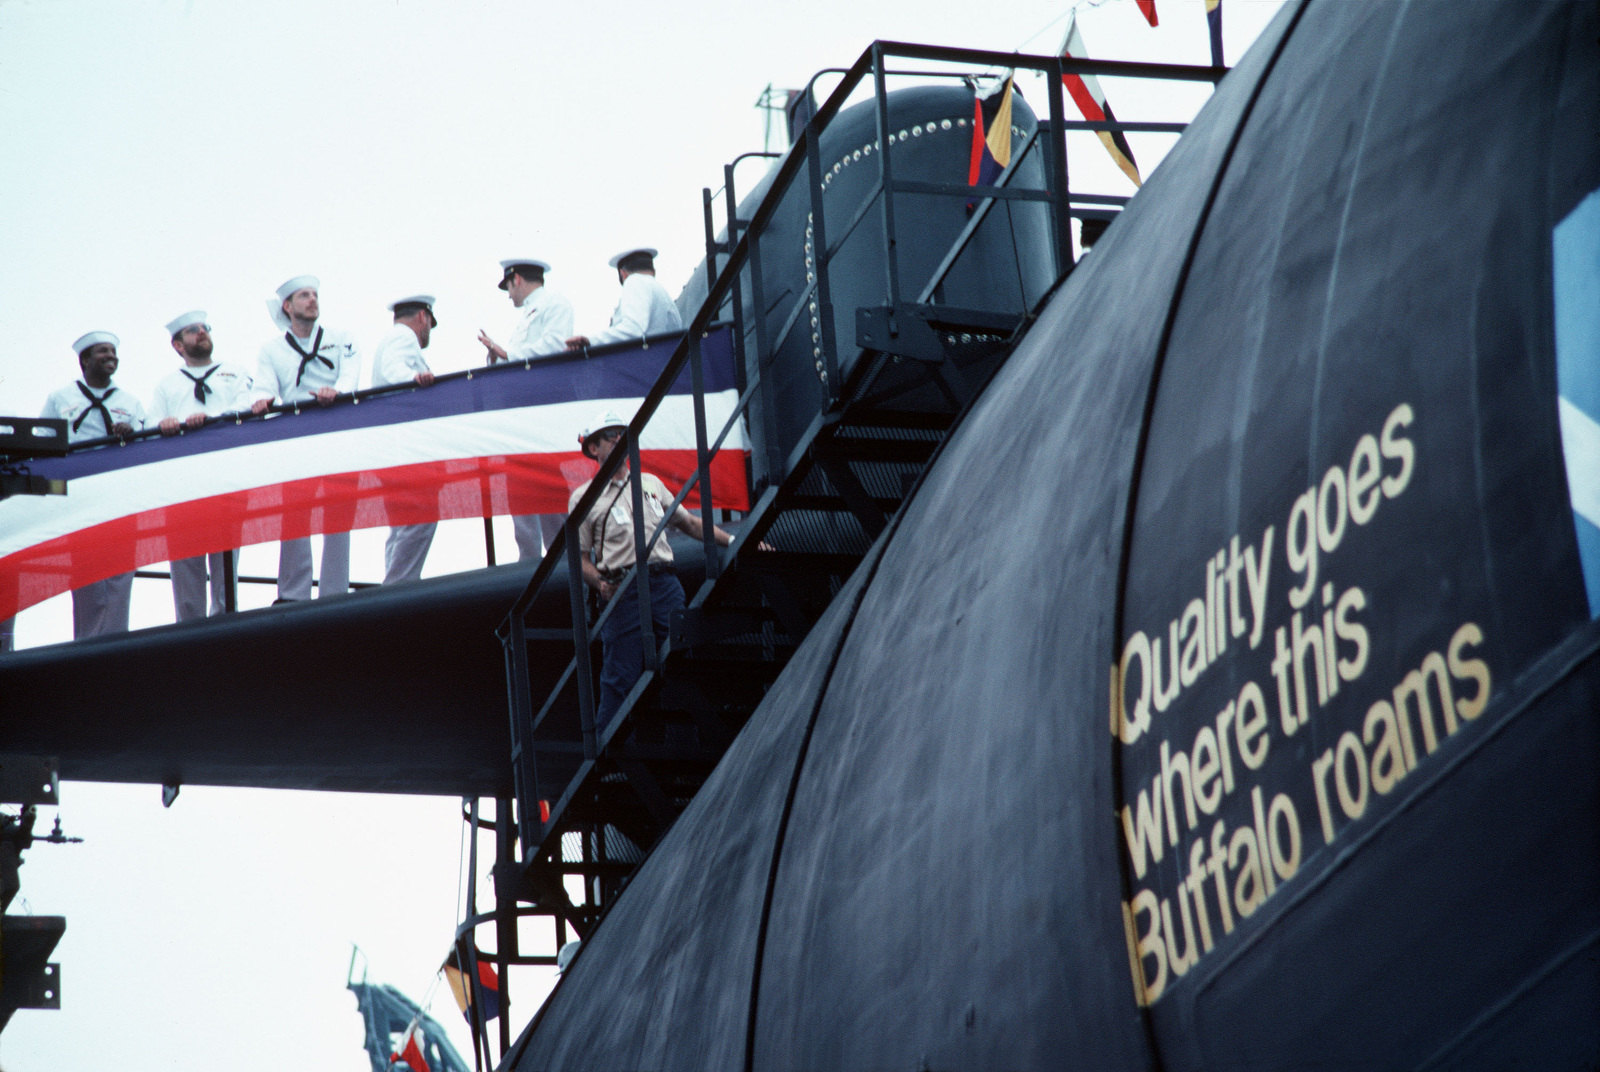 Crewmen stand on the sail of the nuclear-powered attack submarine USS BUFFALO (SSN-715) during the launching ceremony